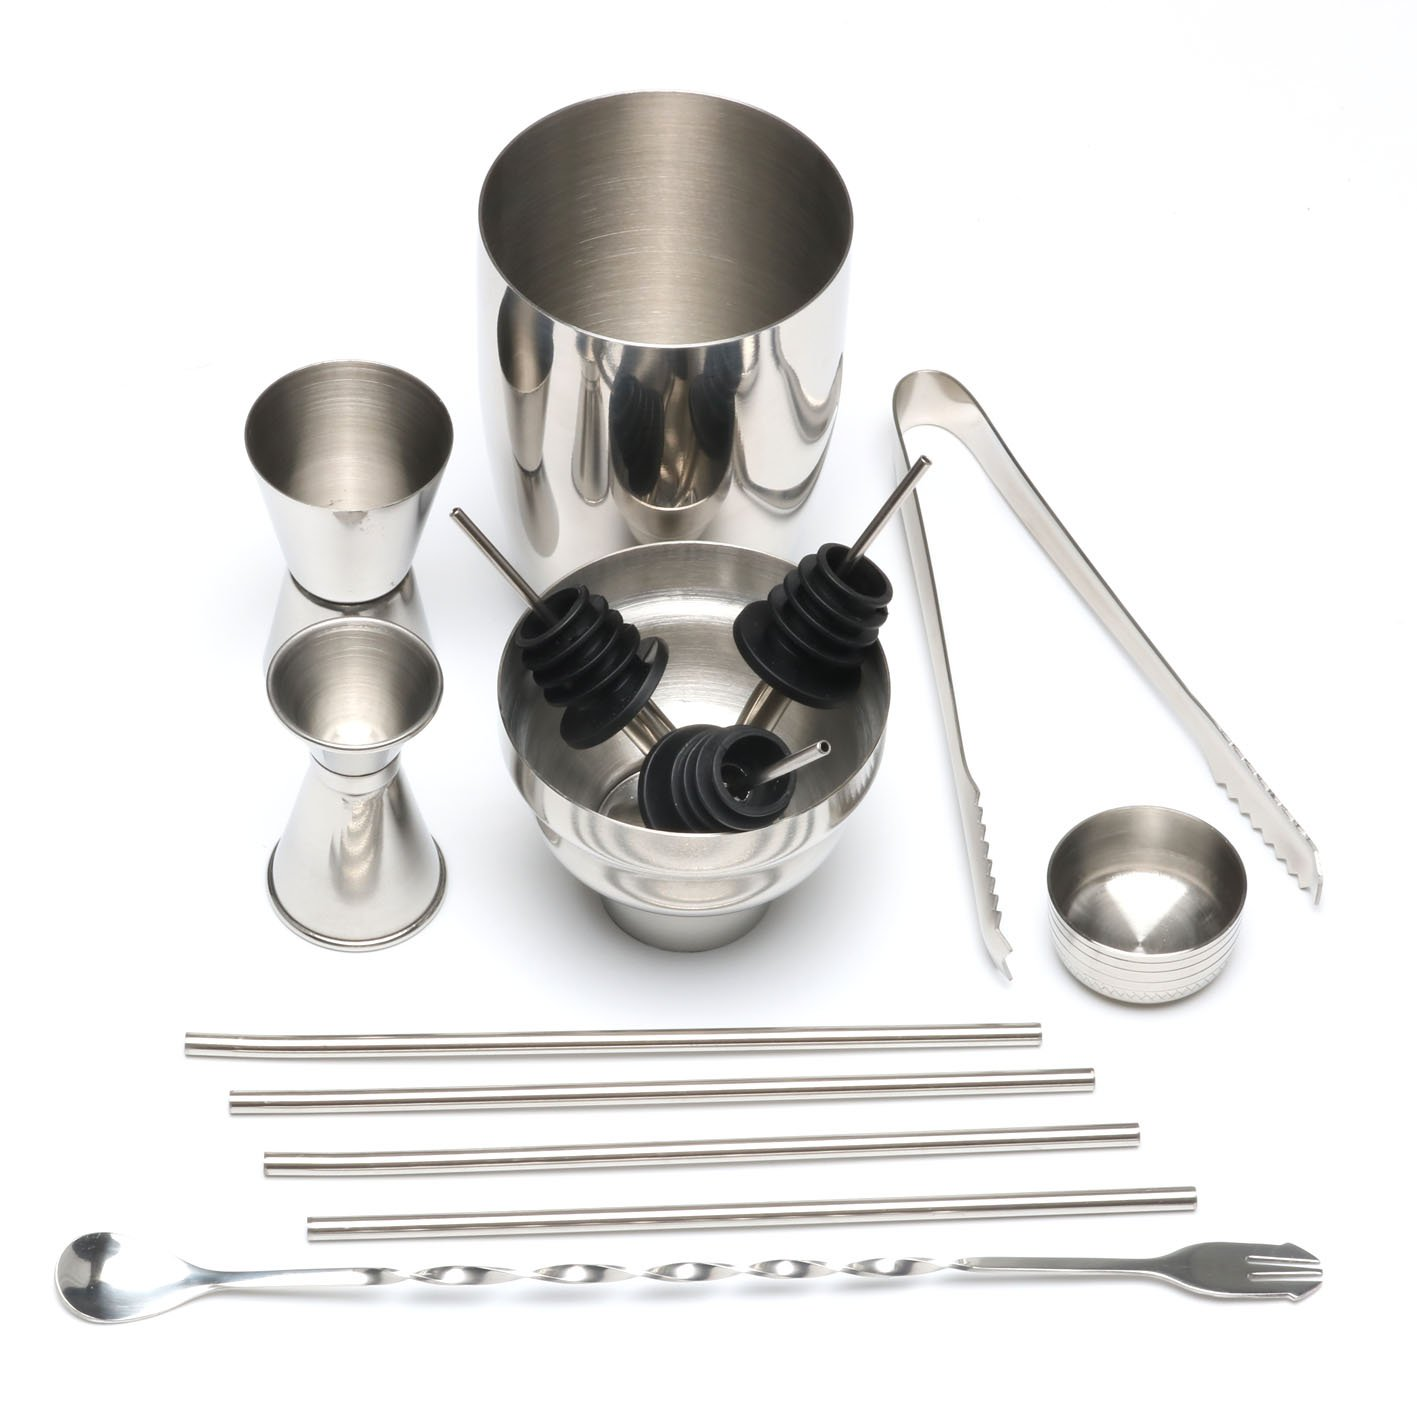 Edofiy 12-piece Stainless Steel Cocktail Shaker Set-Bar Tool Set With Bar Spoon/Fork,2 Meauring Jiggers,3 Pourers,4 stainless steel straws & Cocktail Recipes-Perfect To Mix Any Drink